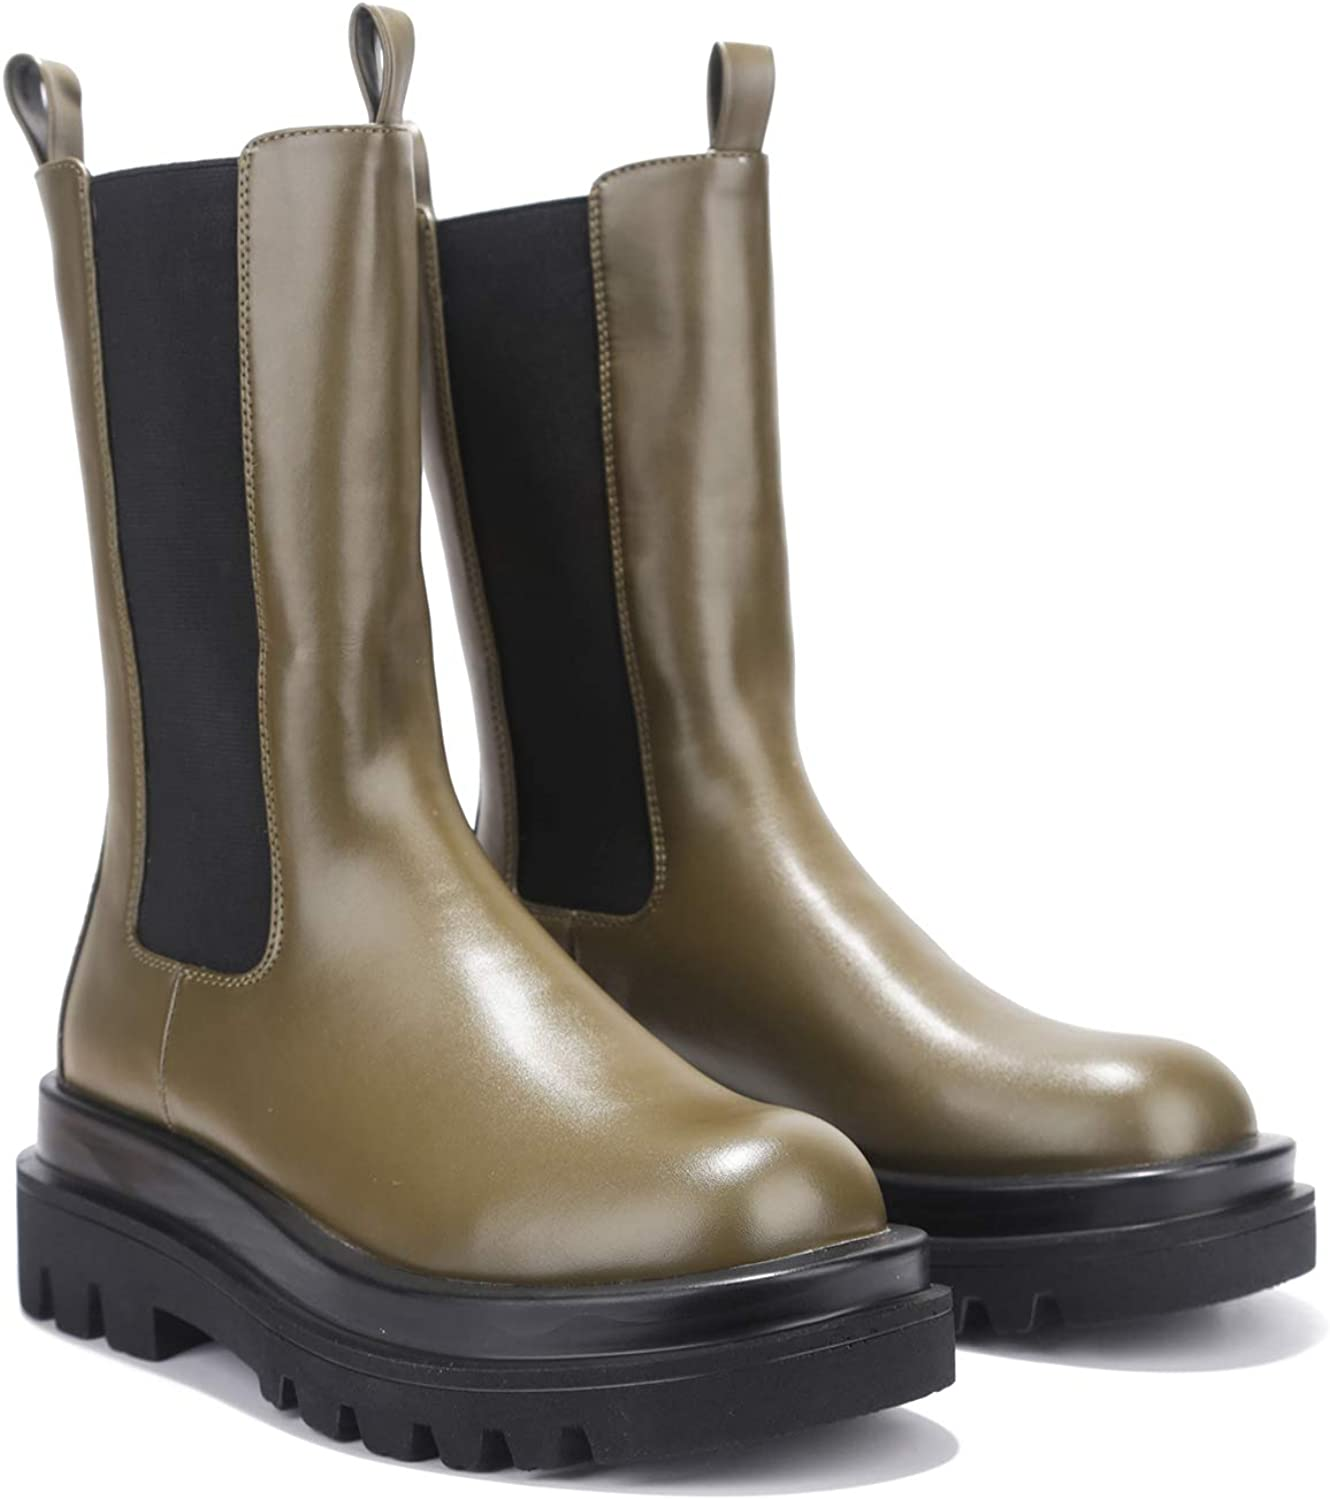 Cape Robbin Vegas Chelsea Boots for Women, Womens Mid Calf Booties with Chunky Block Heels